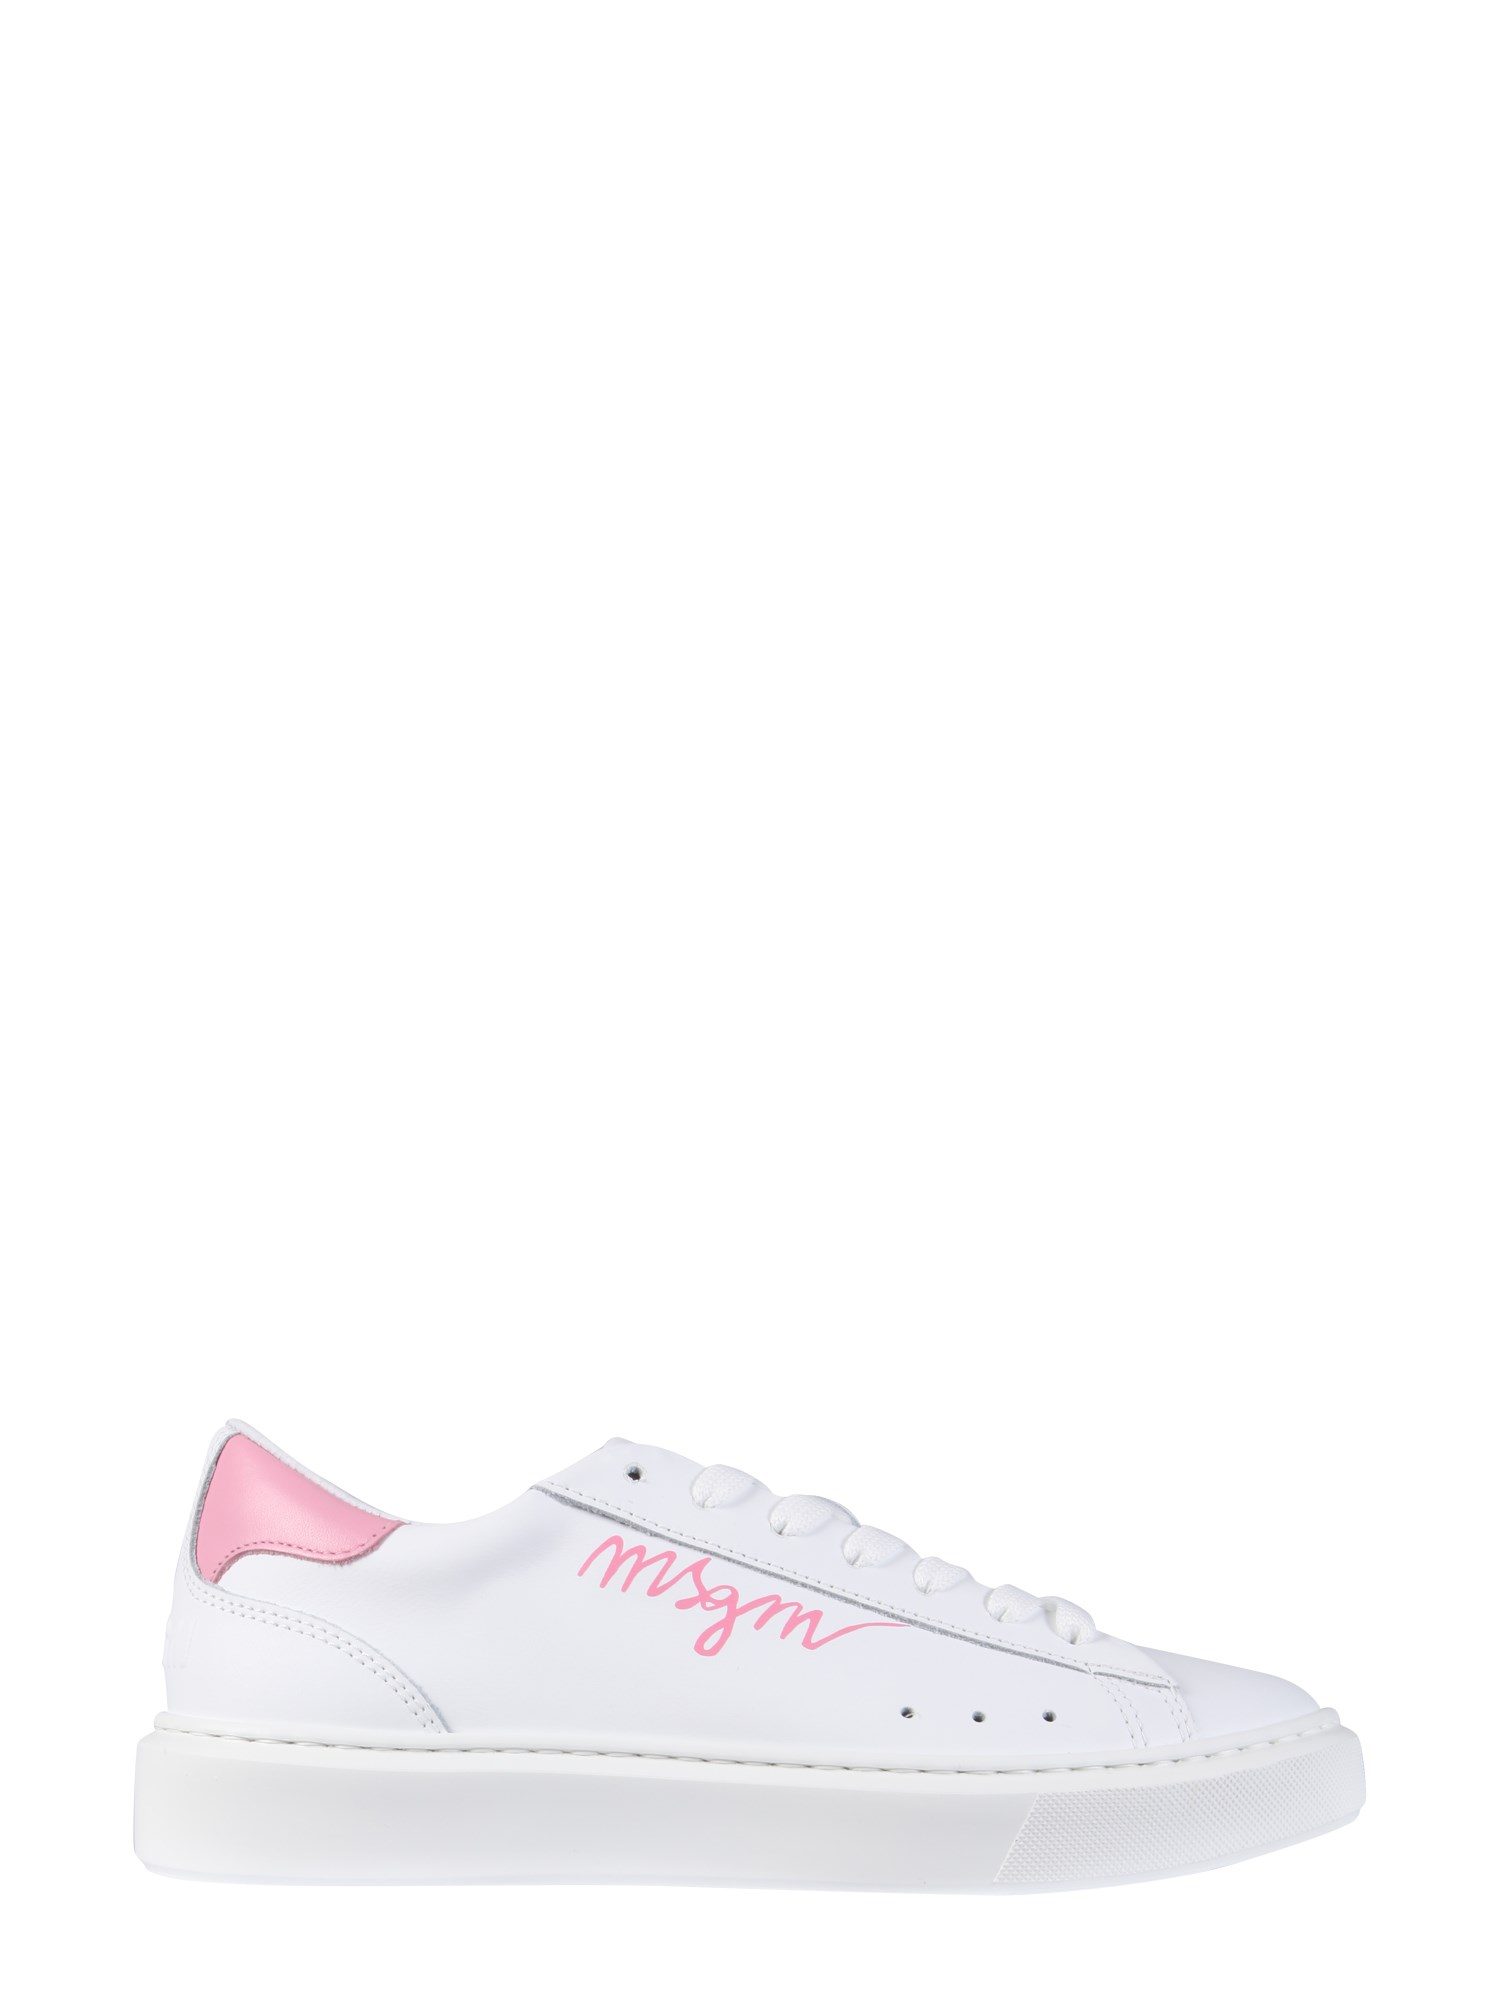 Msgm Sneakers SNEAKERS WITH LOGO